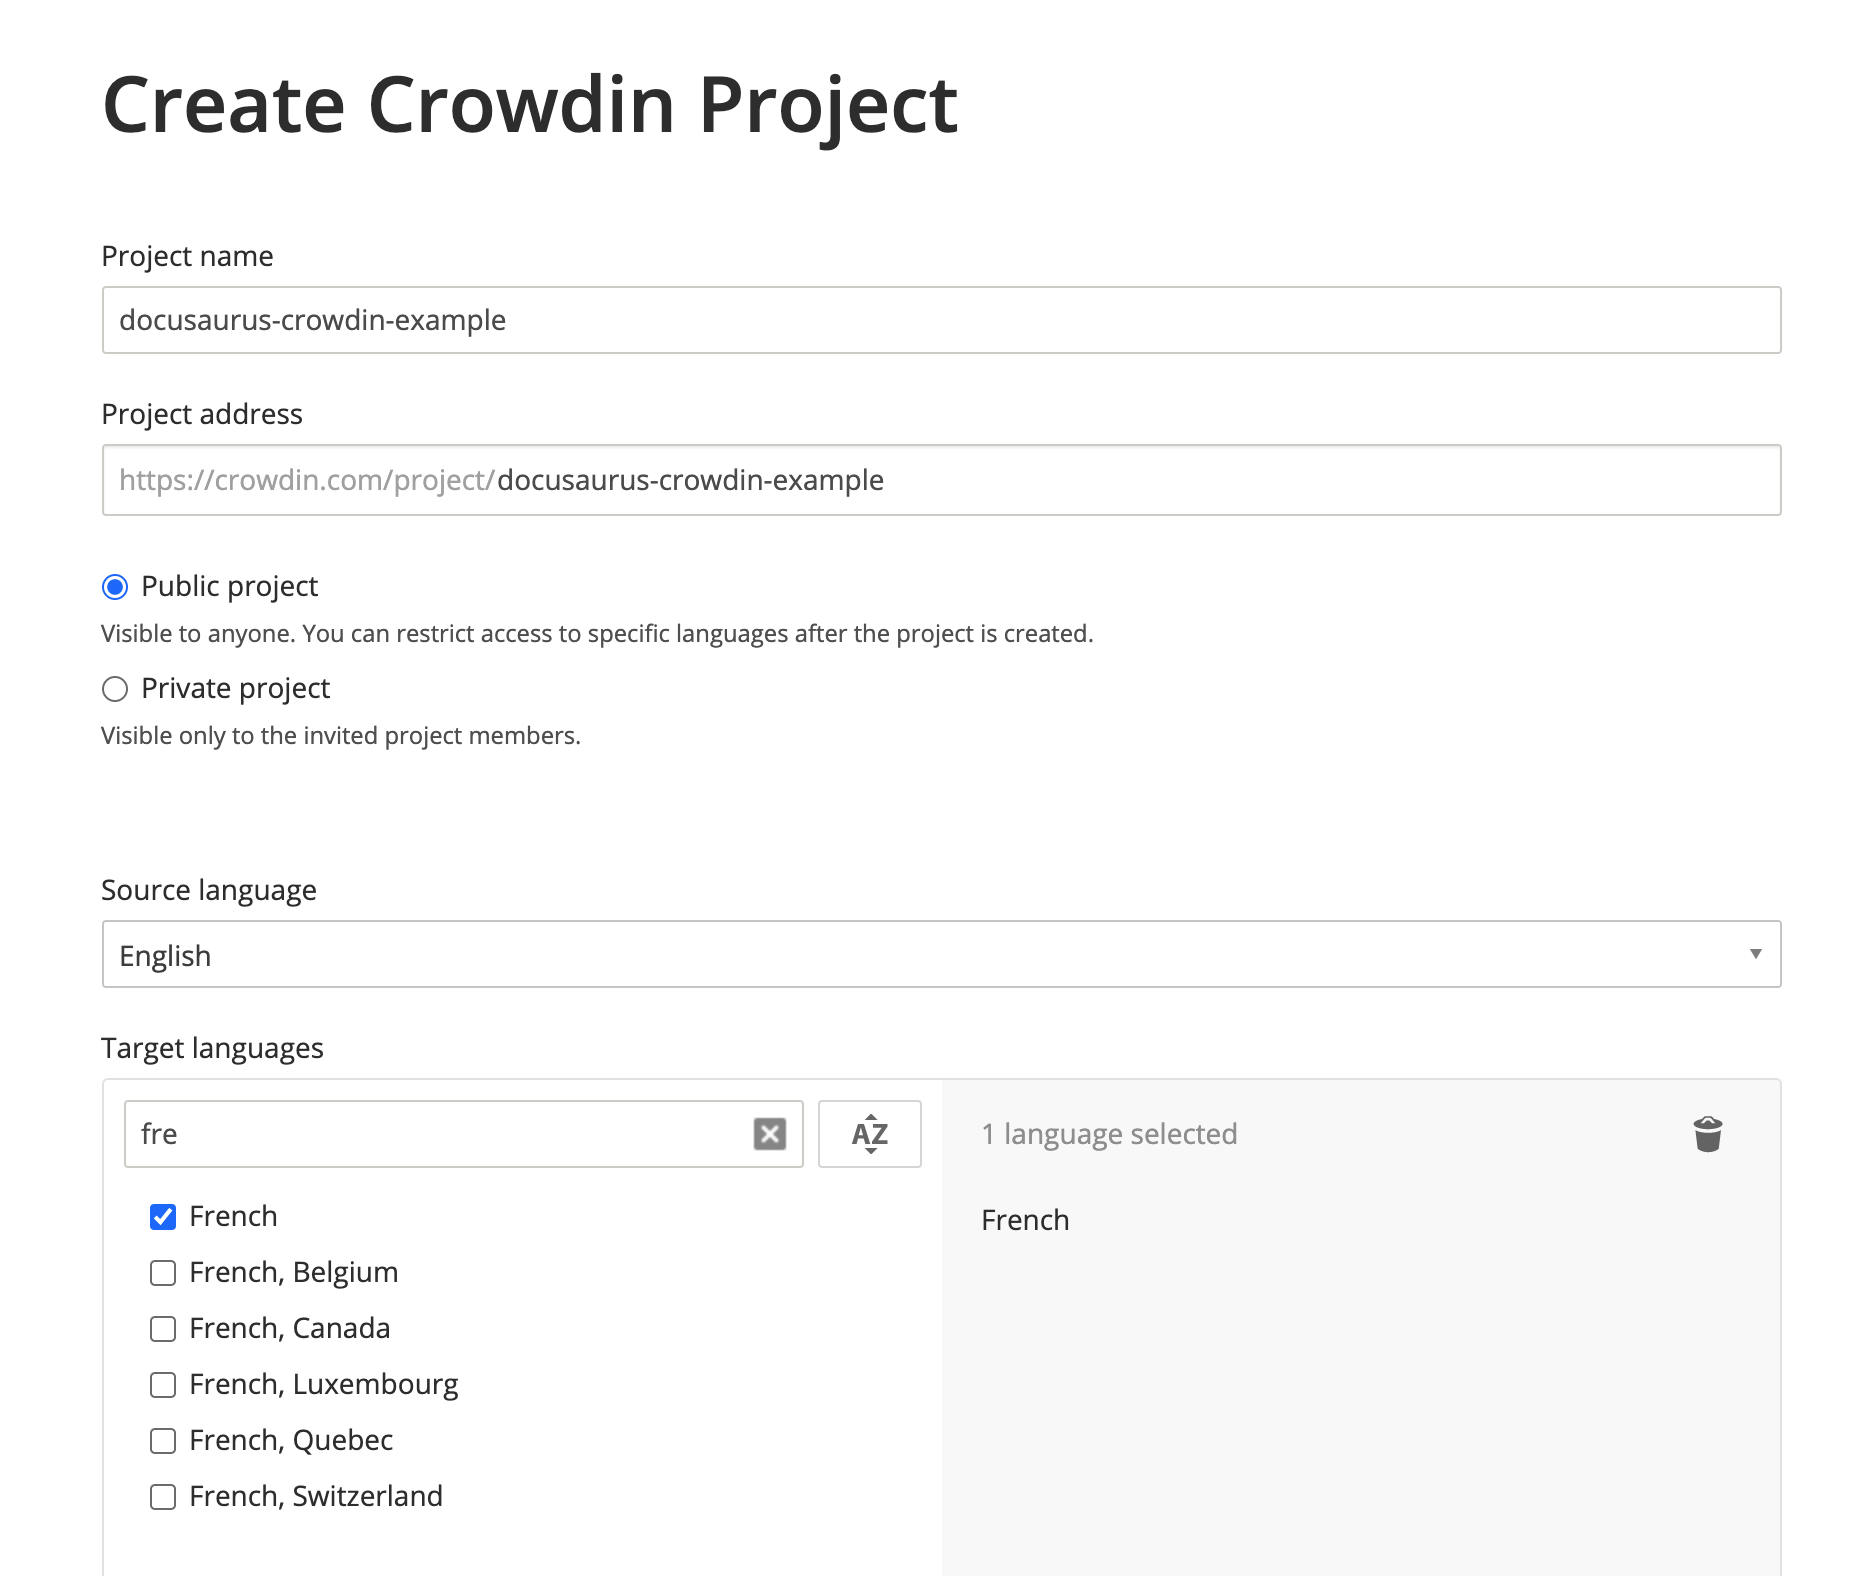 Create a Crowdin project with english as source language, and french as target language